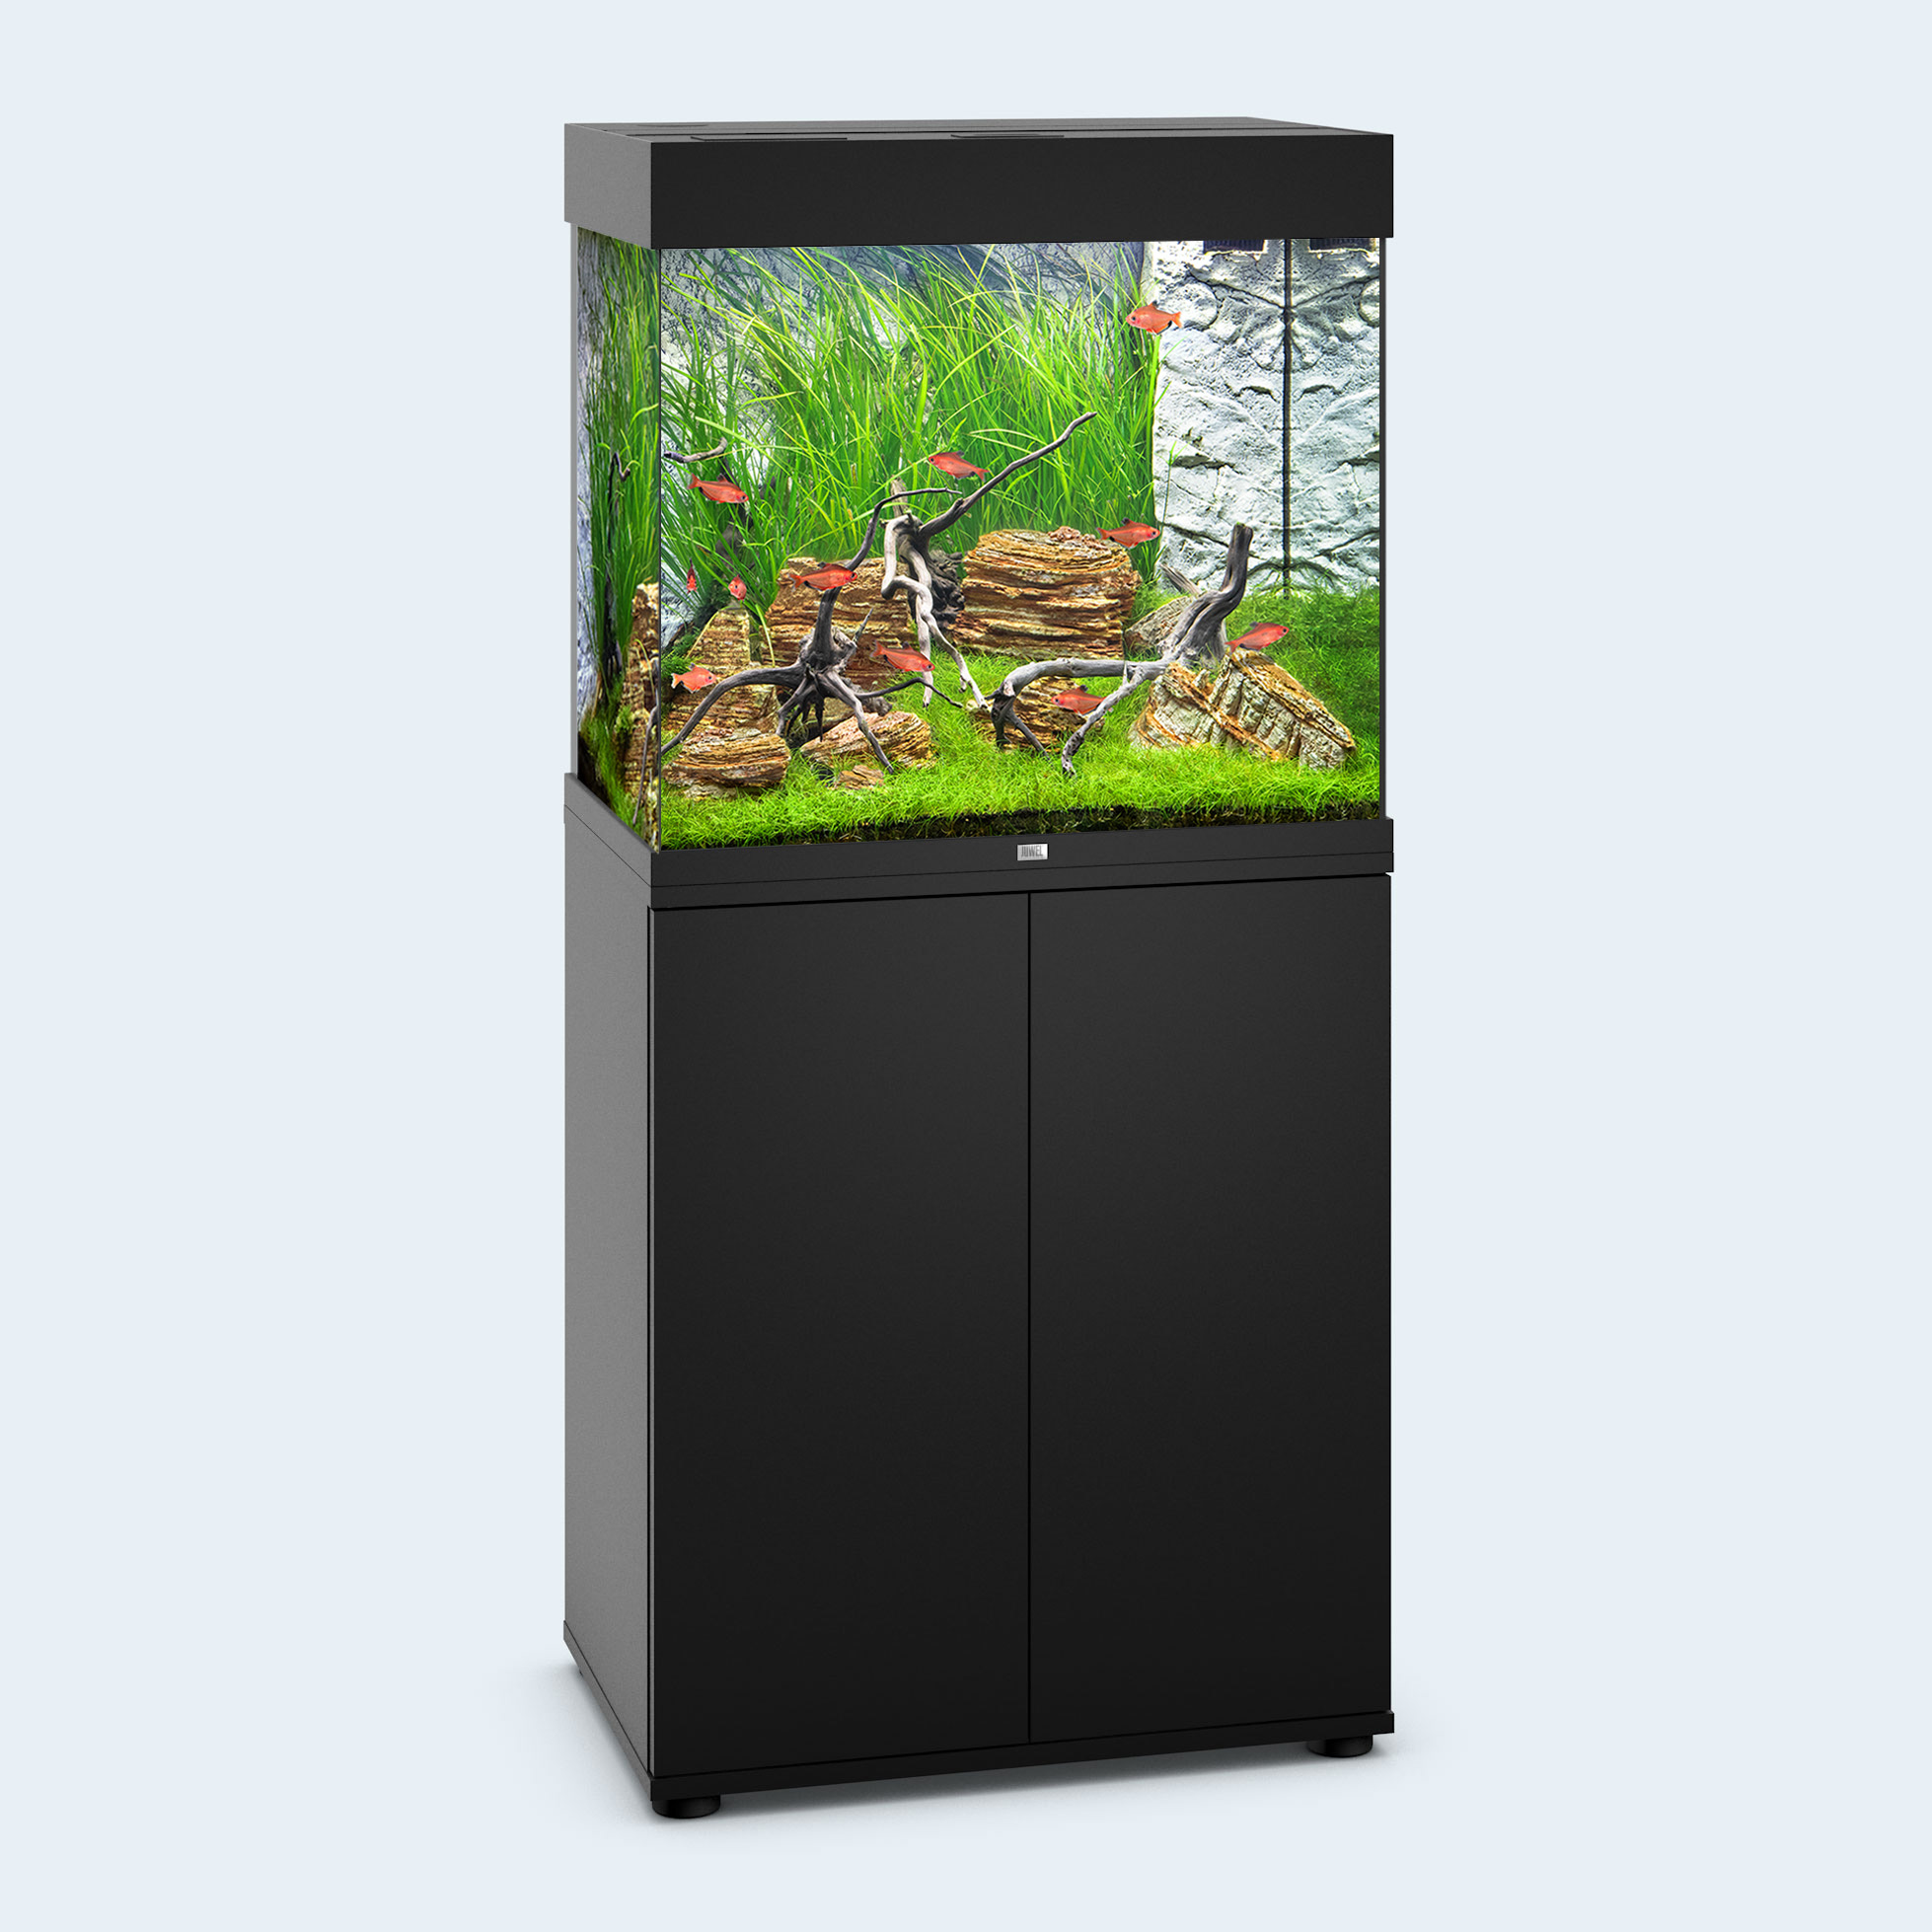 juwel aquarium lido 120 led purchase online. Black Bedroom Furniture Sets. Home Design Ideas